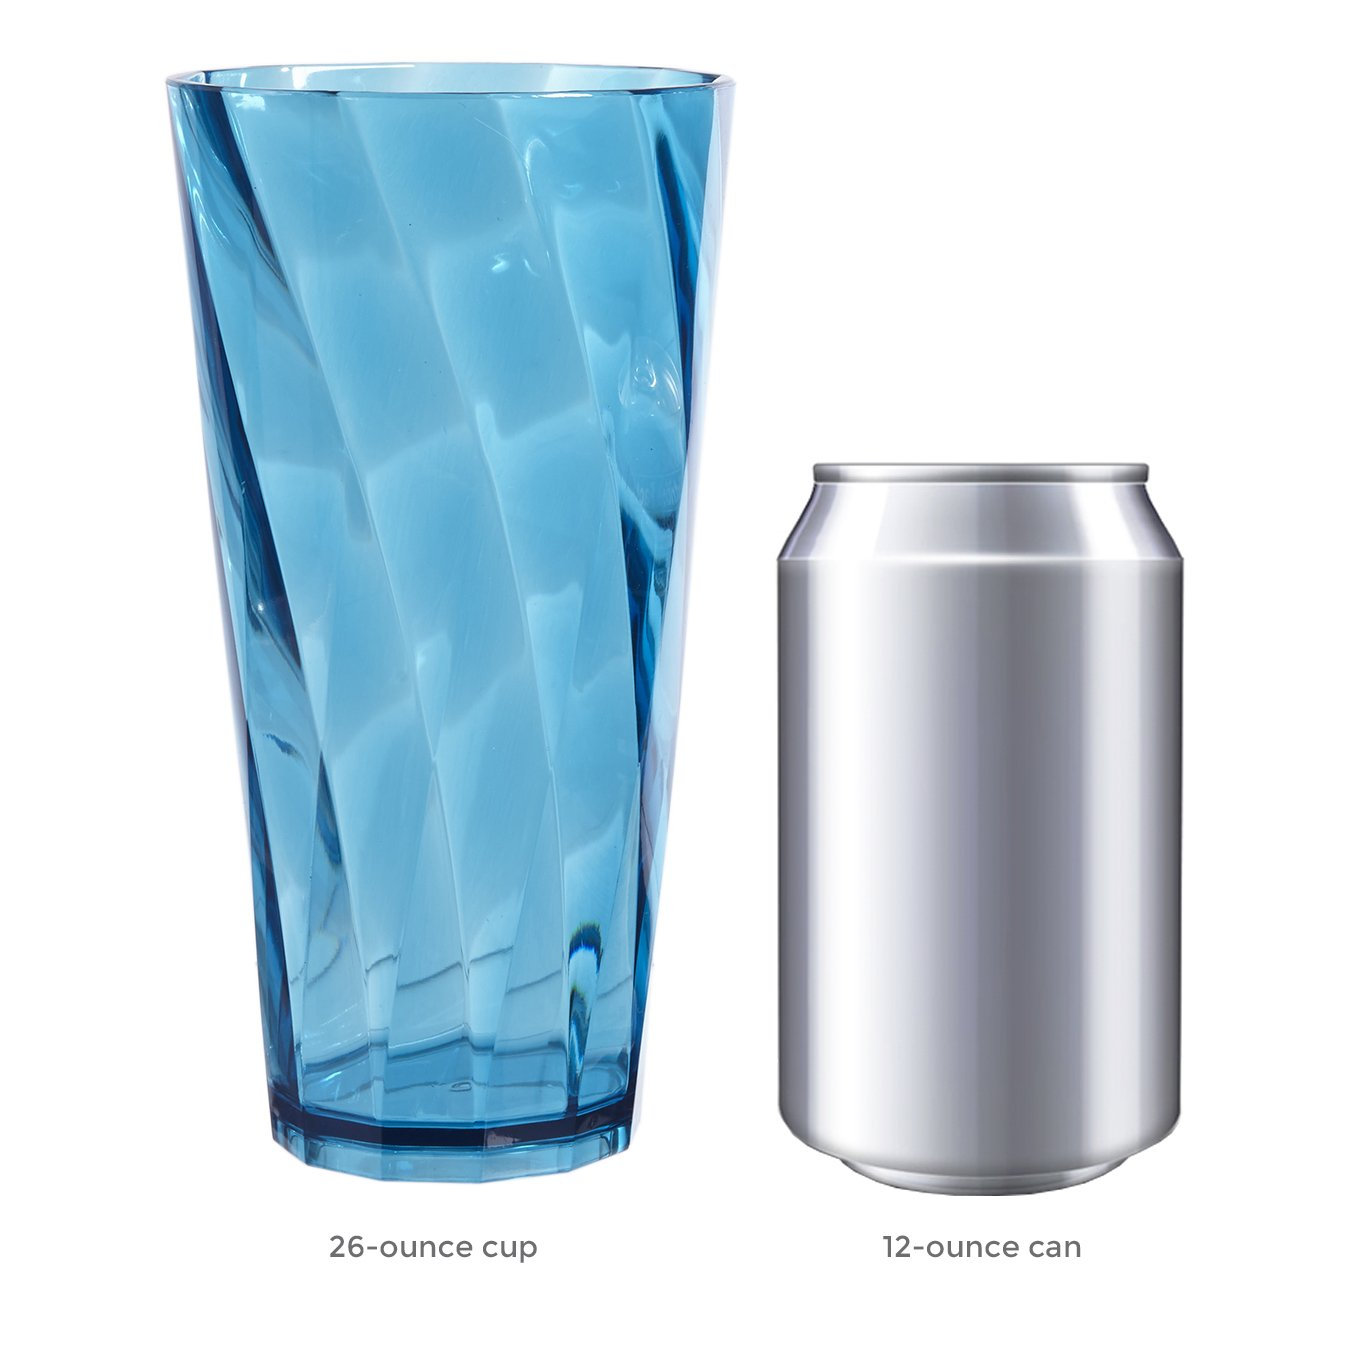 Optix 26-ounce Plastic Tumblers | set of 8 in 4 assorted colors by US Acrylic (Image #4)